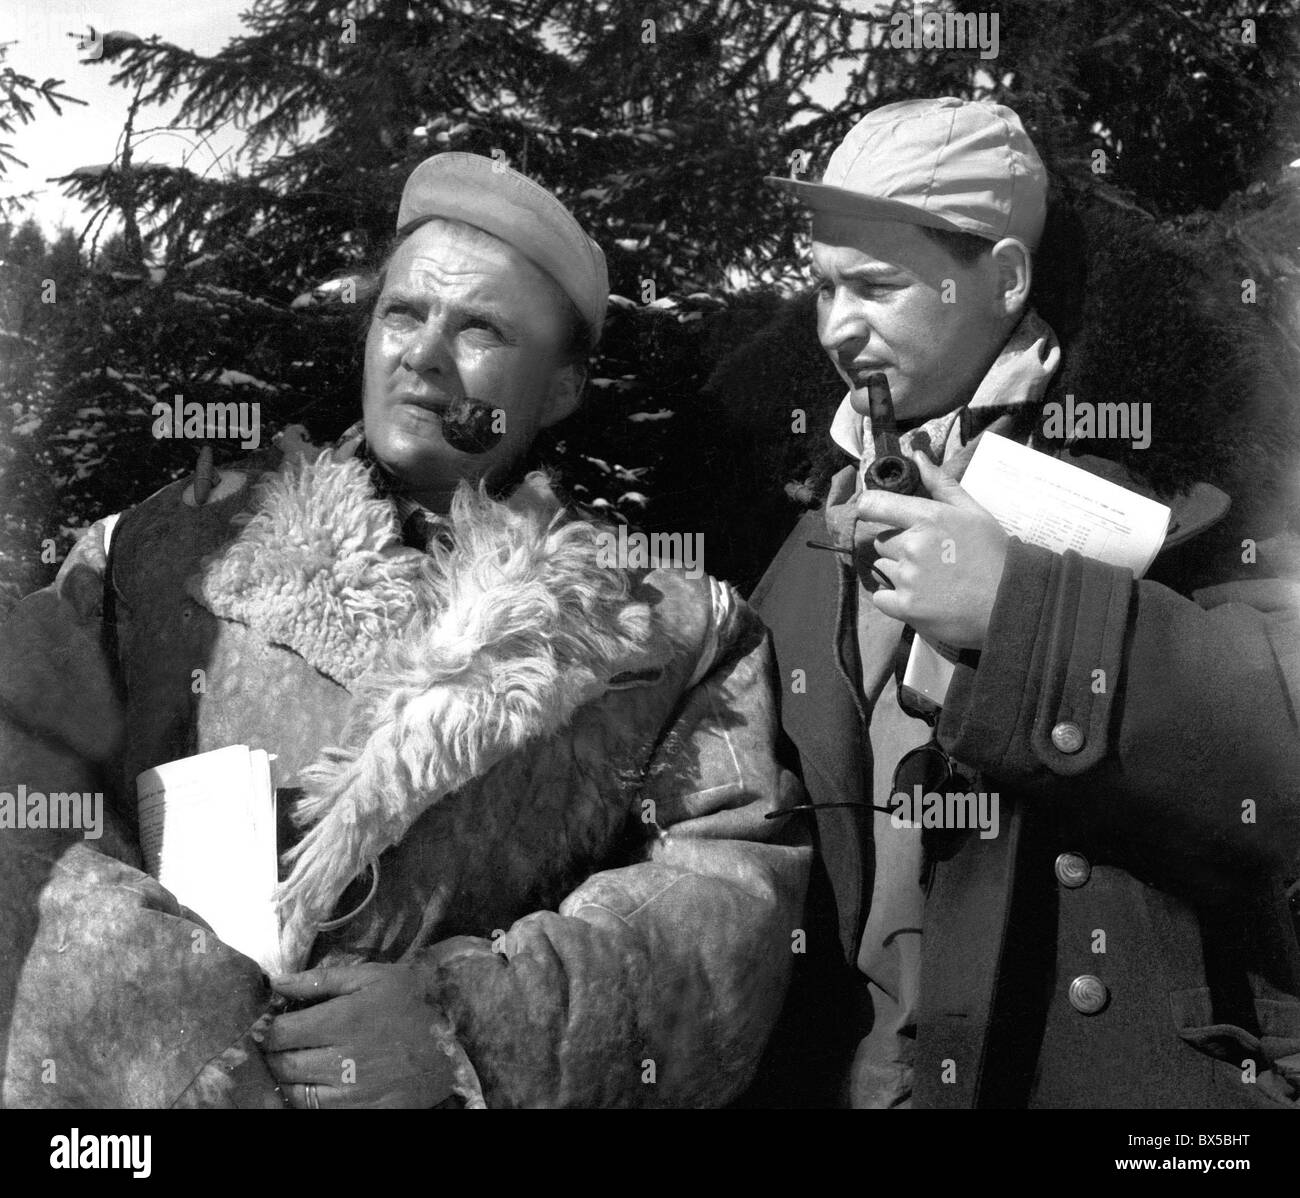 Czechoslovakia, Spindleruv Mlyn 1947. Men dressed for extreme cold enjoy pipe smoking. CTK Vintage Photo - Stock Image